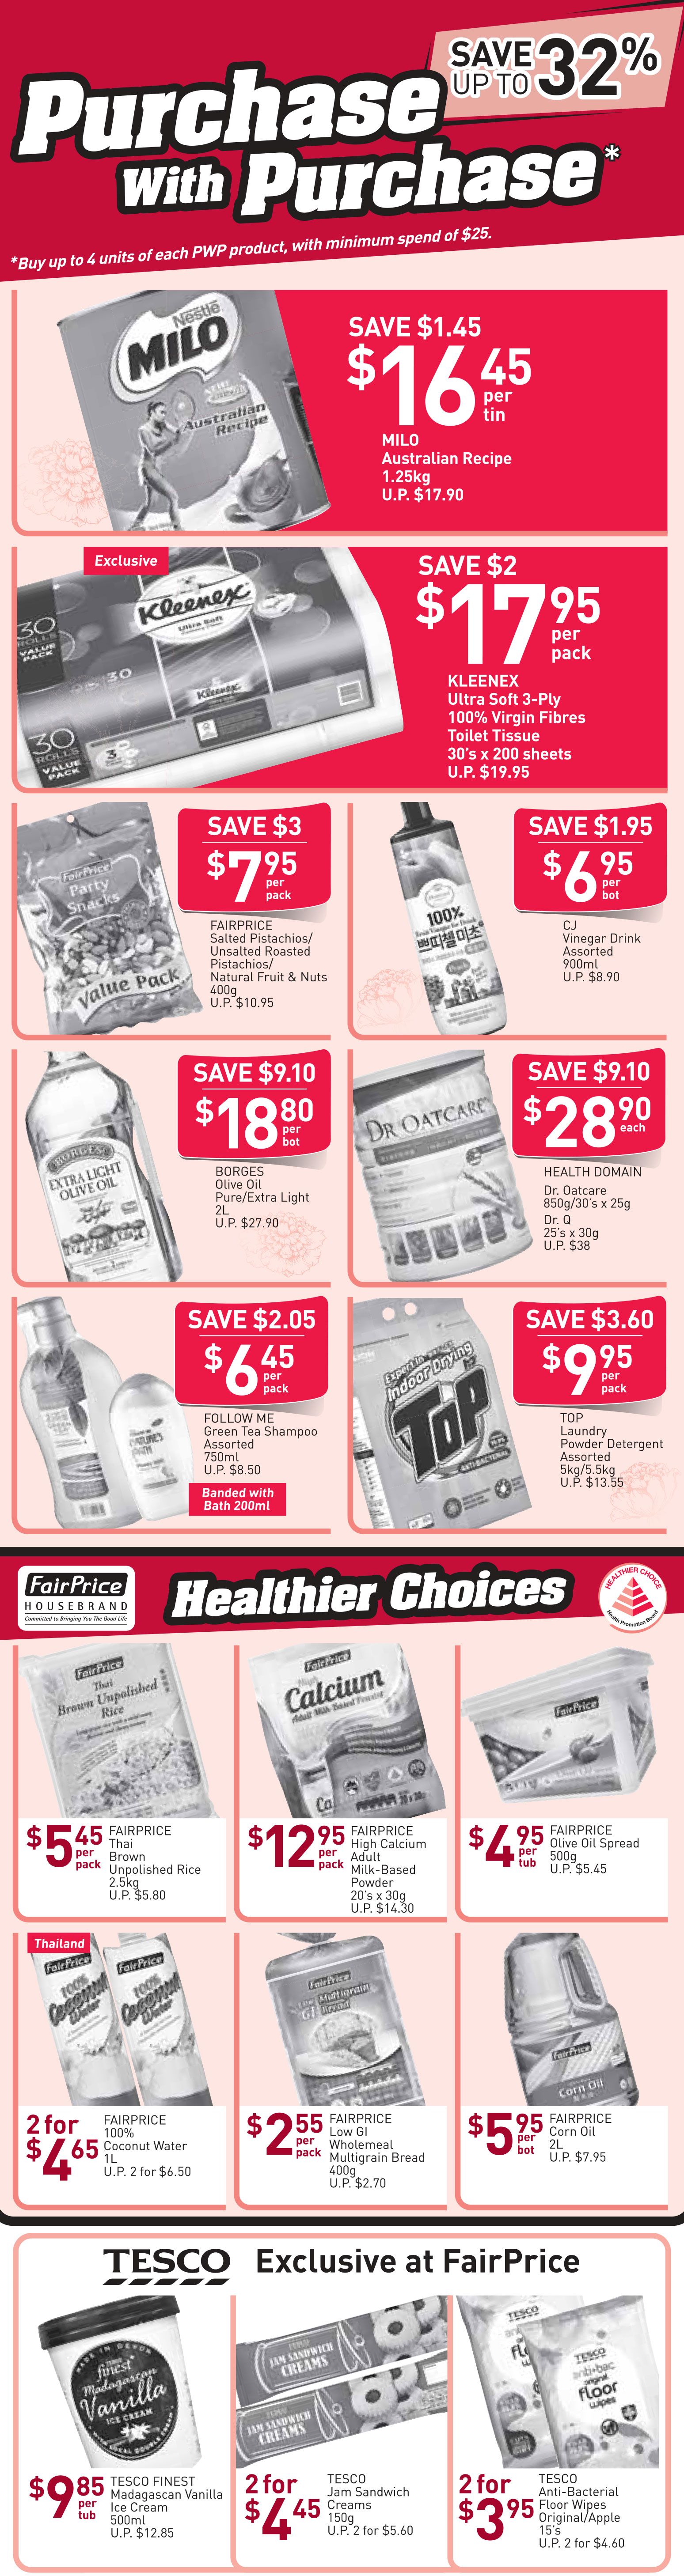 NTUC FairPrice Singapore Your Weekly Saver Promotion 31 Jan - 13 Feb 2019   Why Not Deals 2 & Promotions